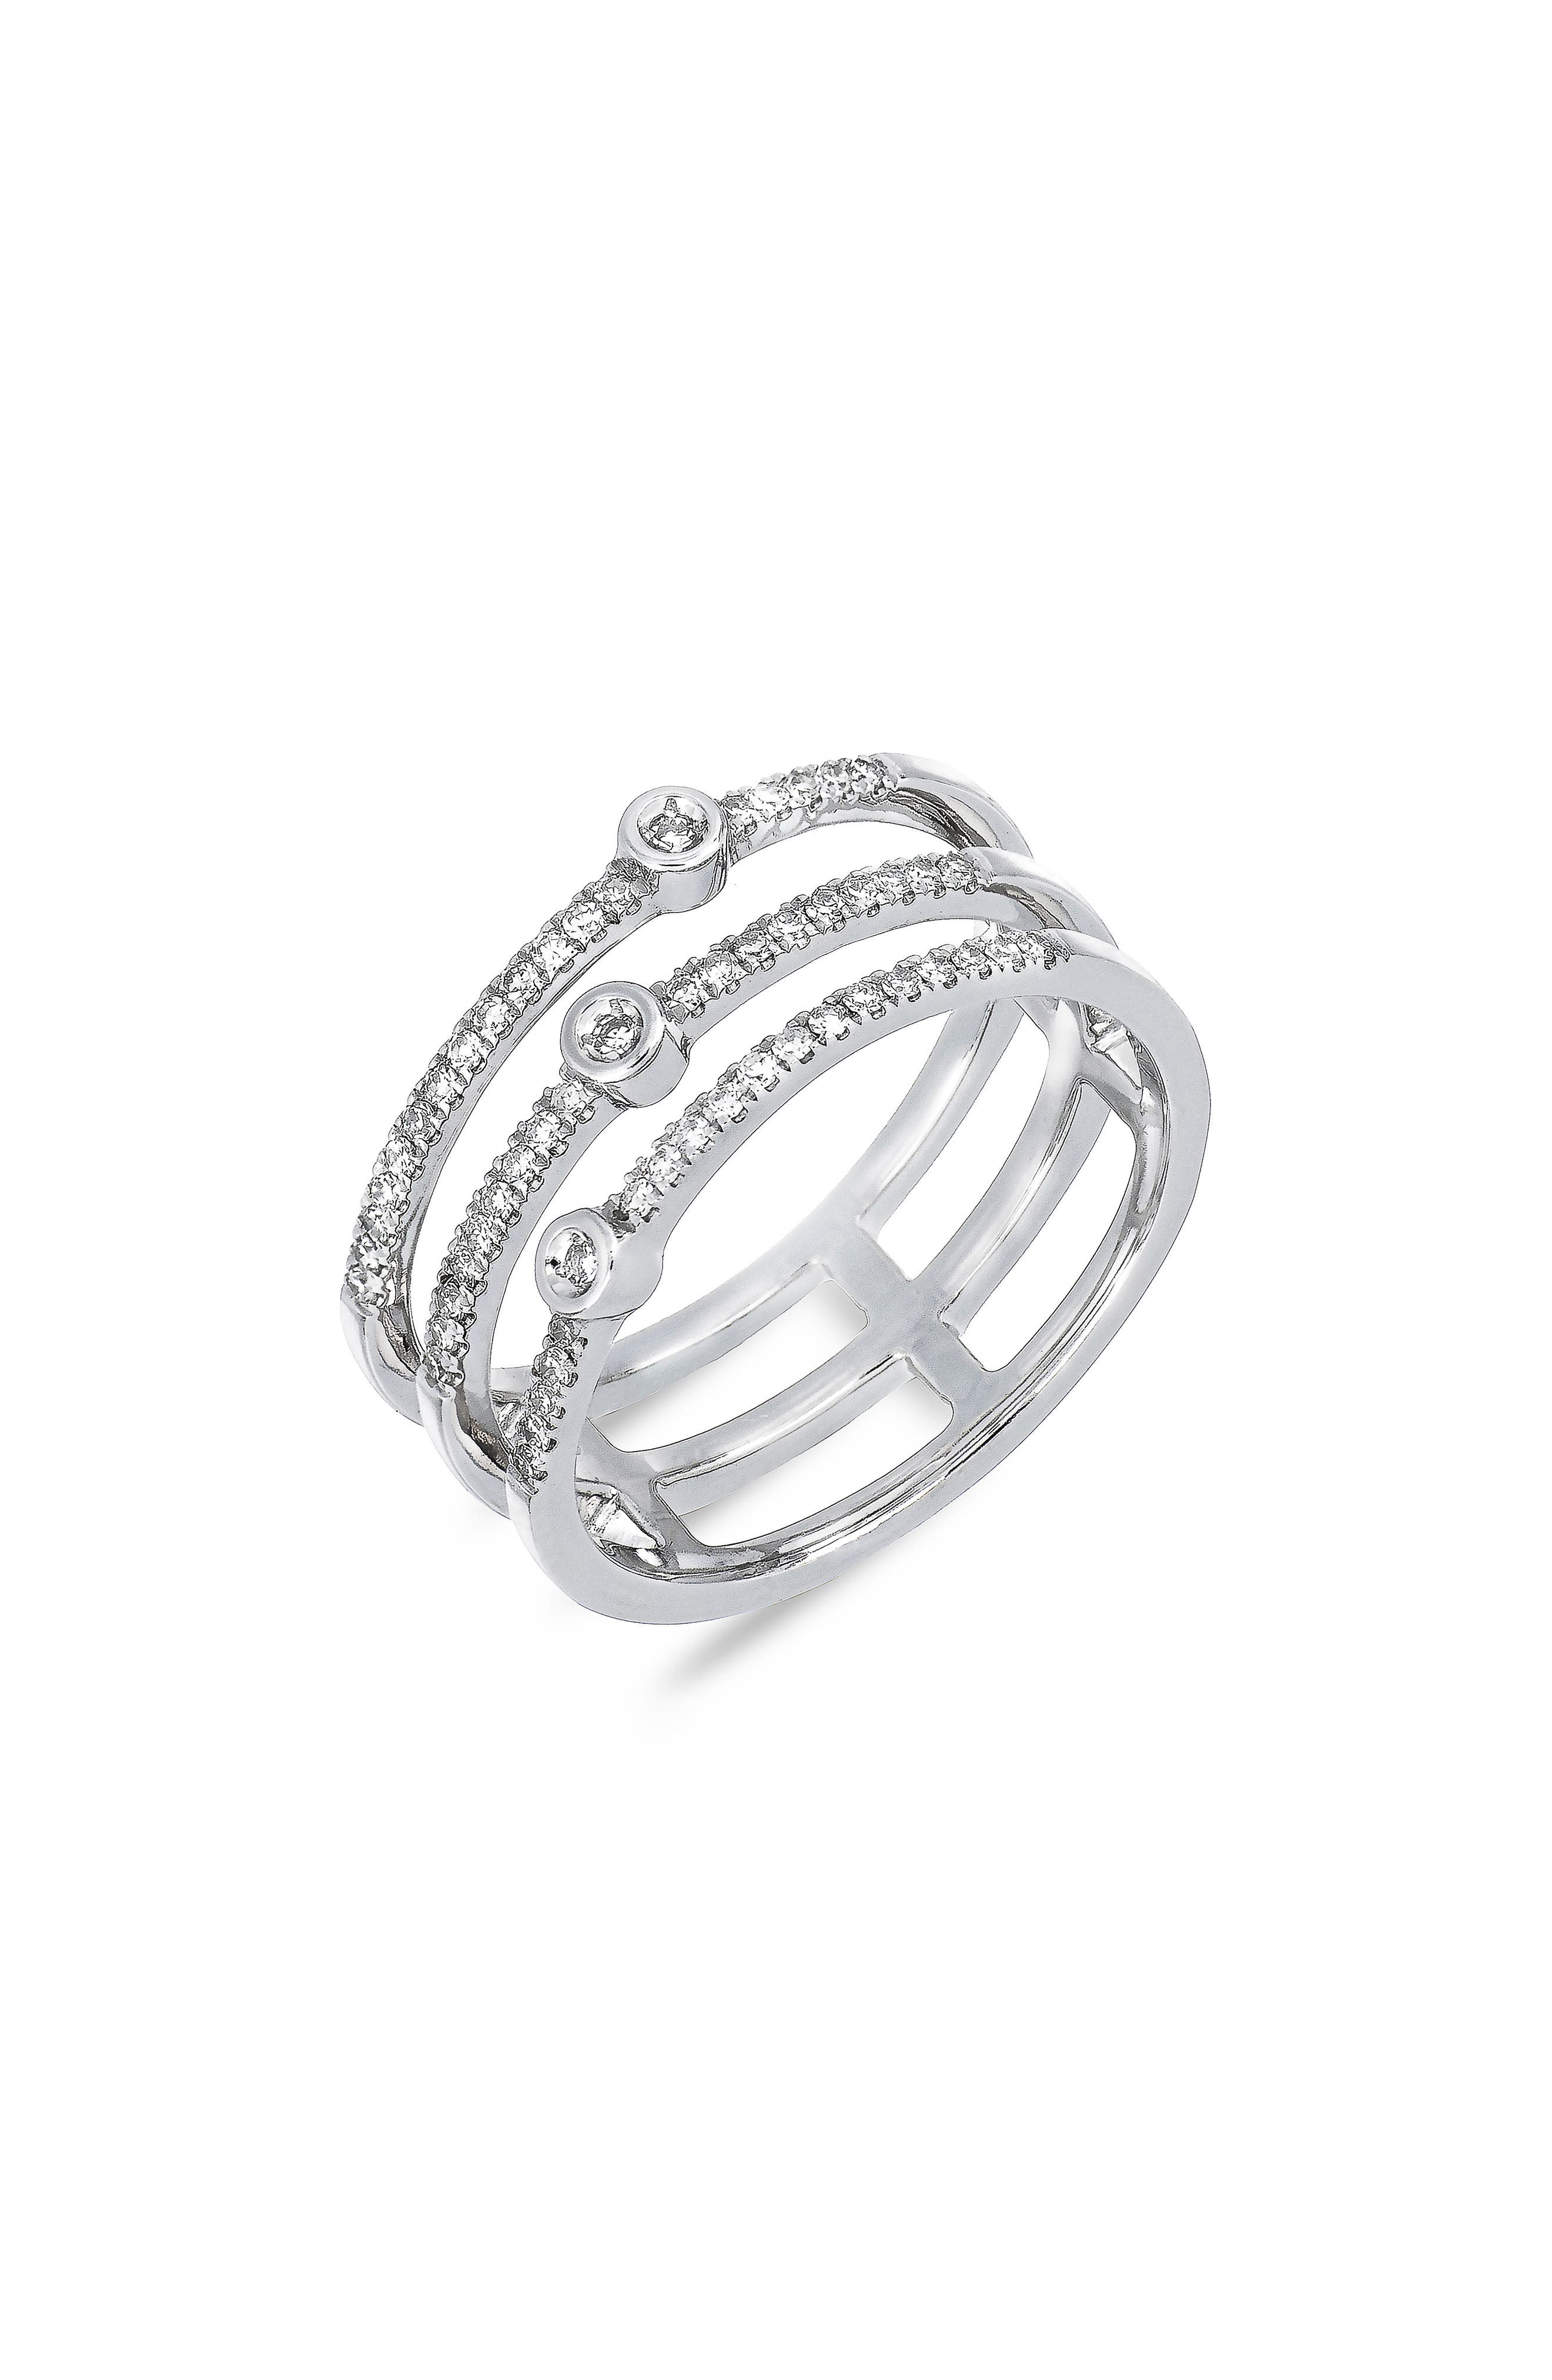 Carrière Triple Row Diamond Stackable Ring,                         Main,                         color, Sterling Silver/ Diamond